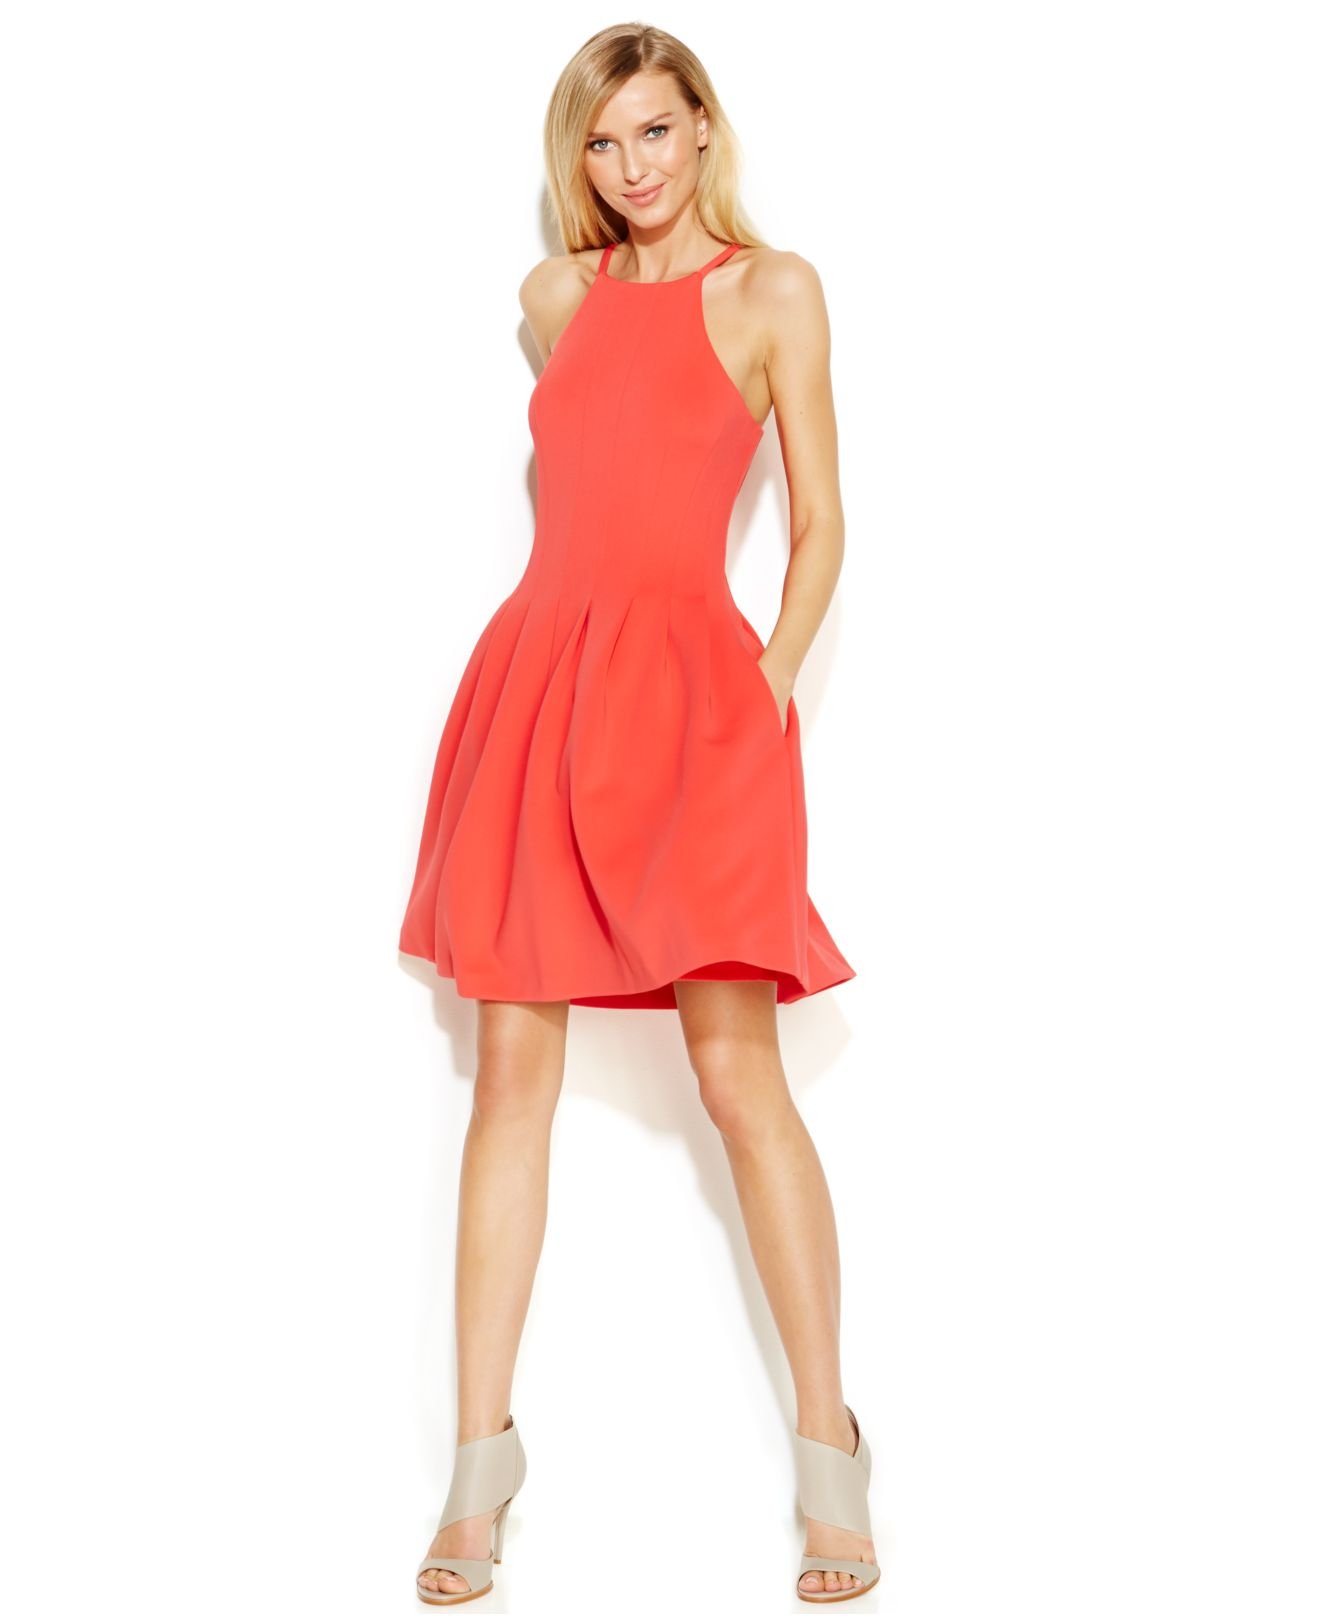 Awesome Calvin Klein Casual Dress For Women  80 Off Only On ThredUP